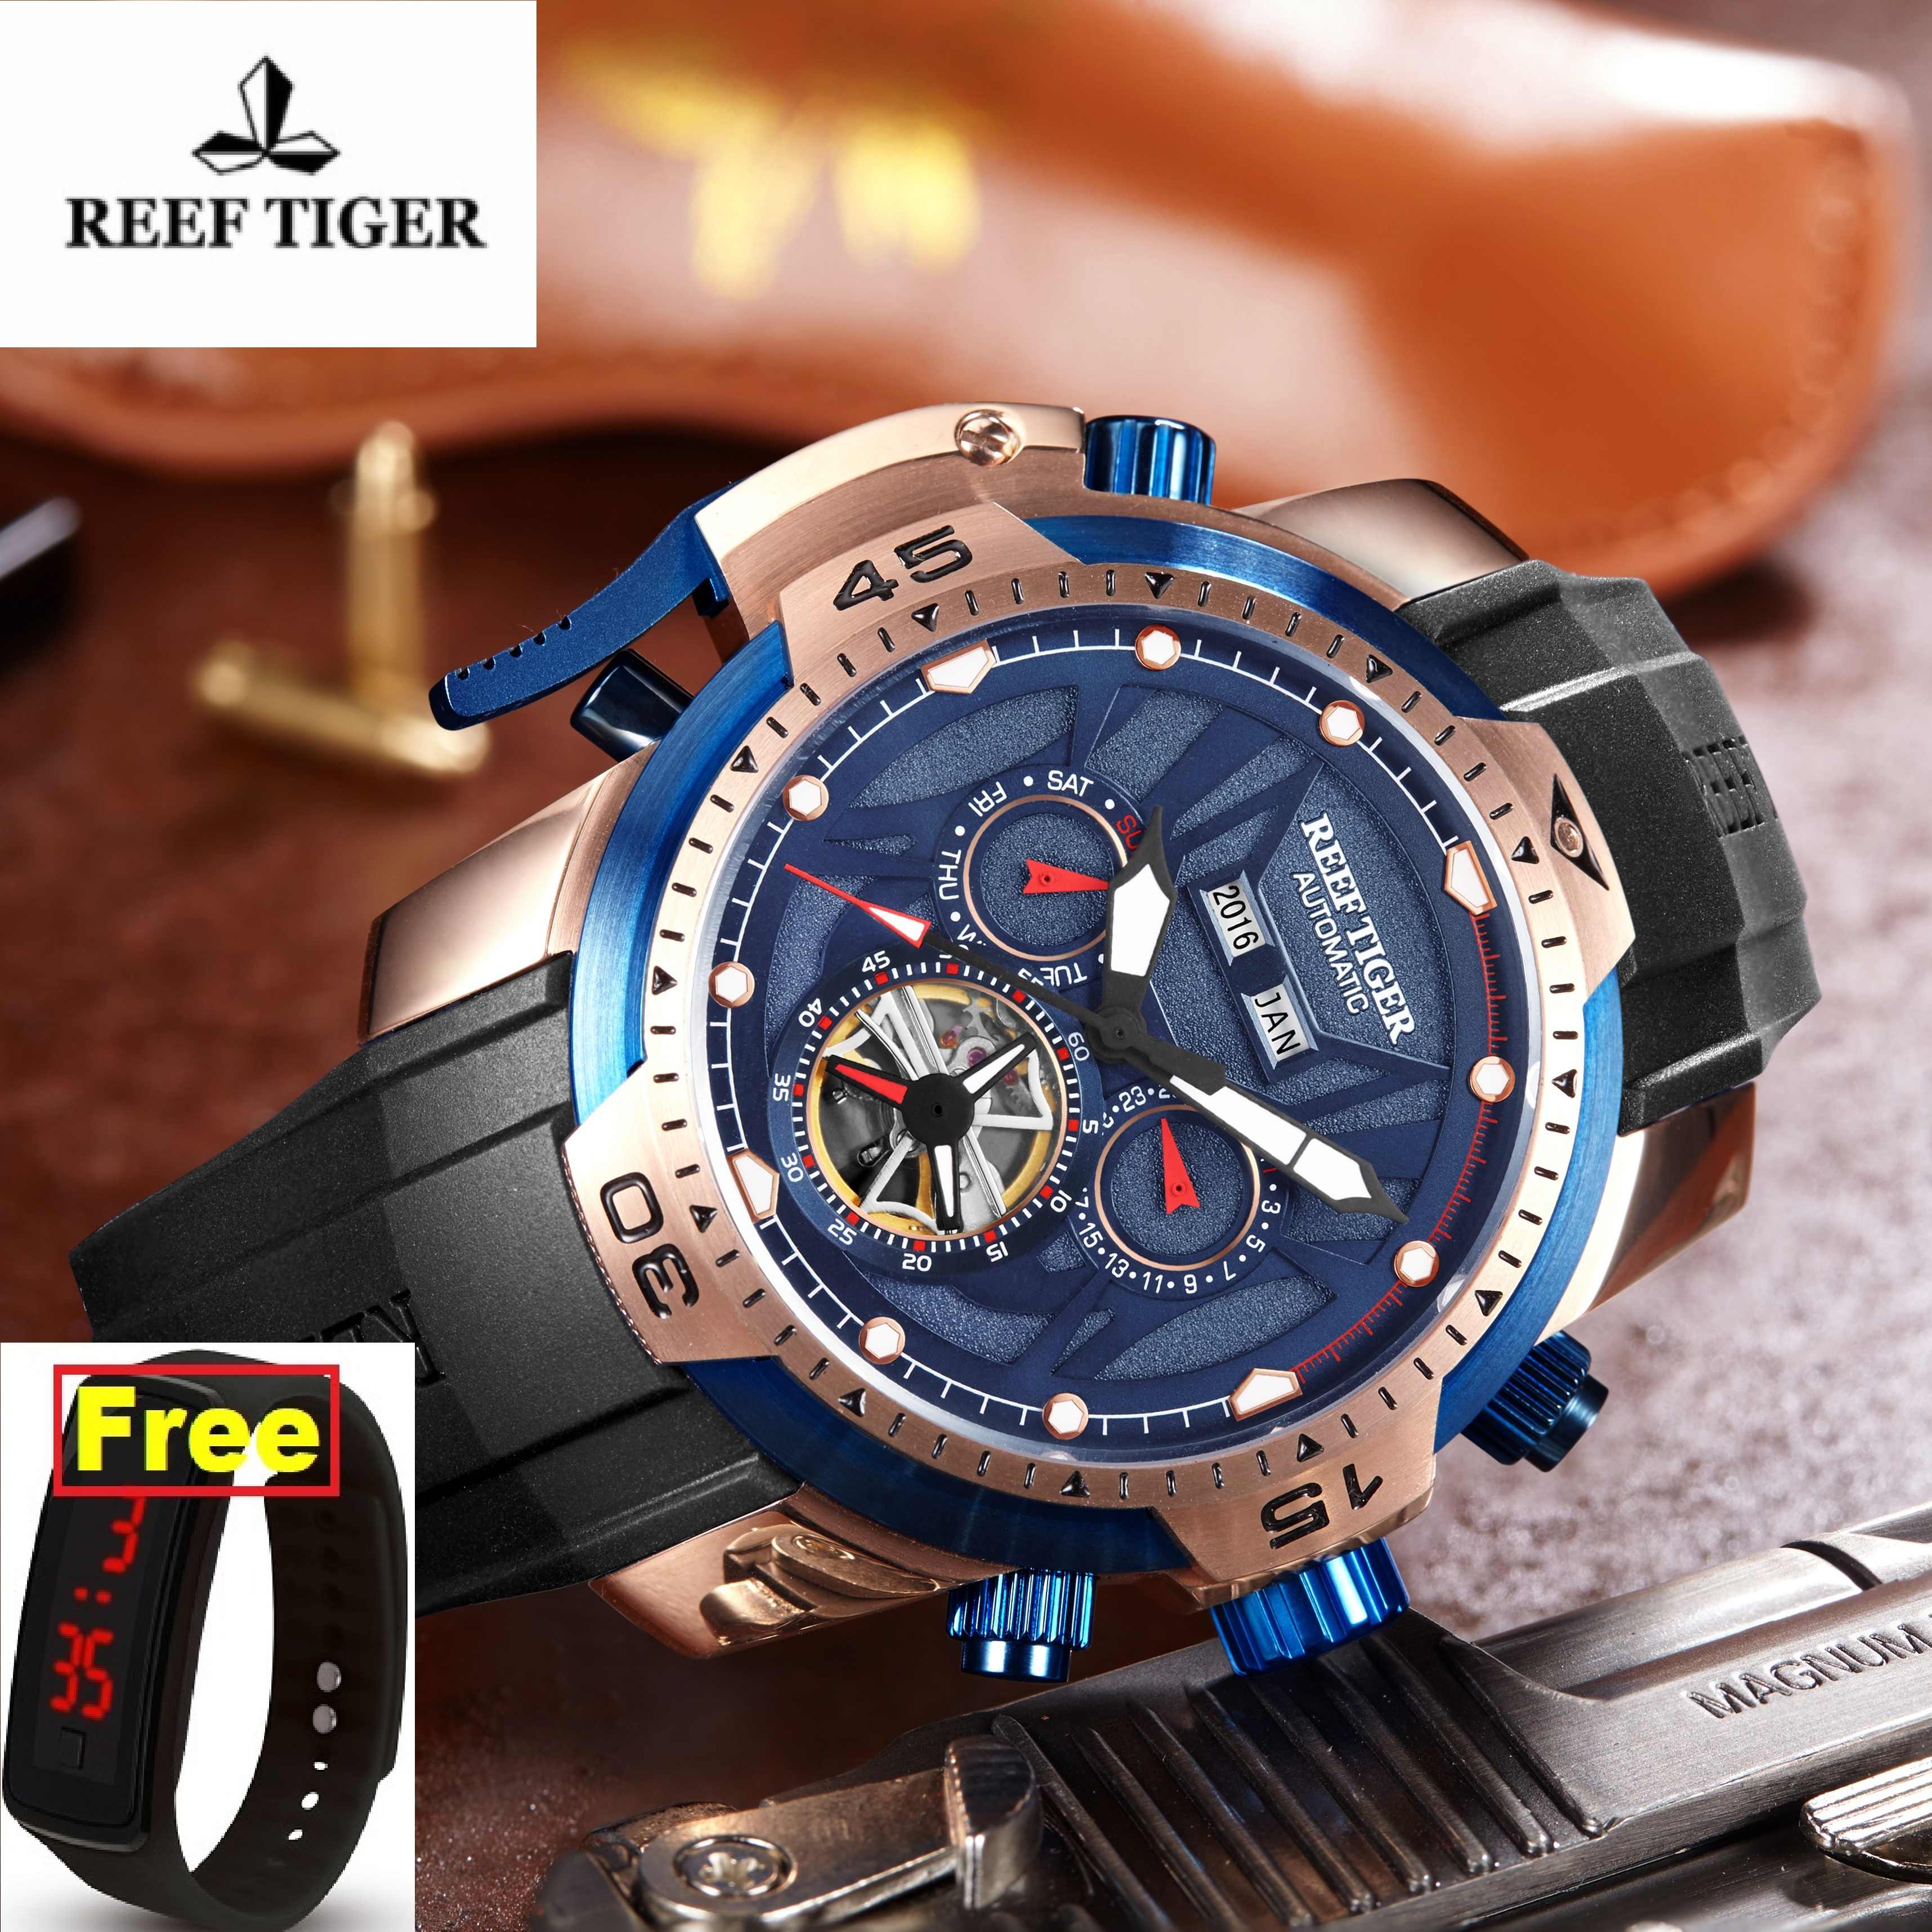 Reef Tiger/RT Sport Watch Men Big Rose Gold Transformer Edition 2019 Waterproof Military Watches Mechanical Wrist Watch RGA3532